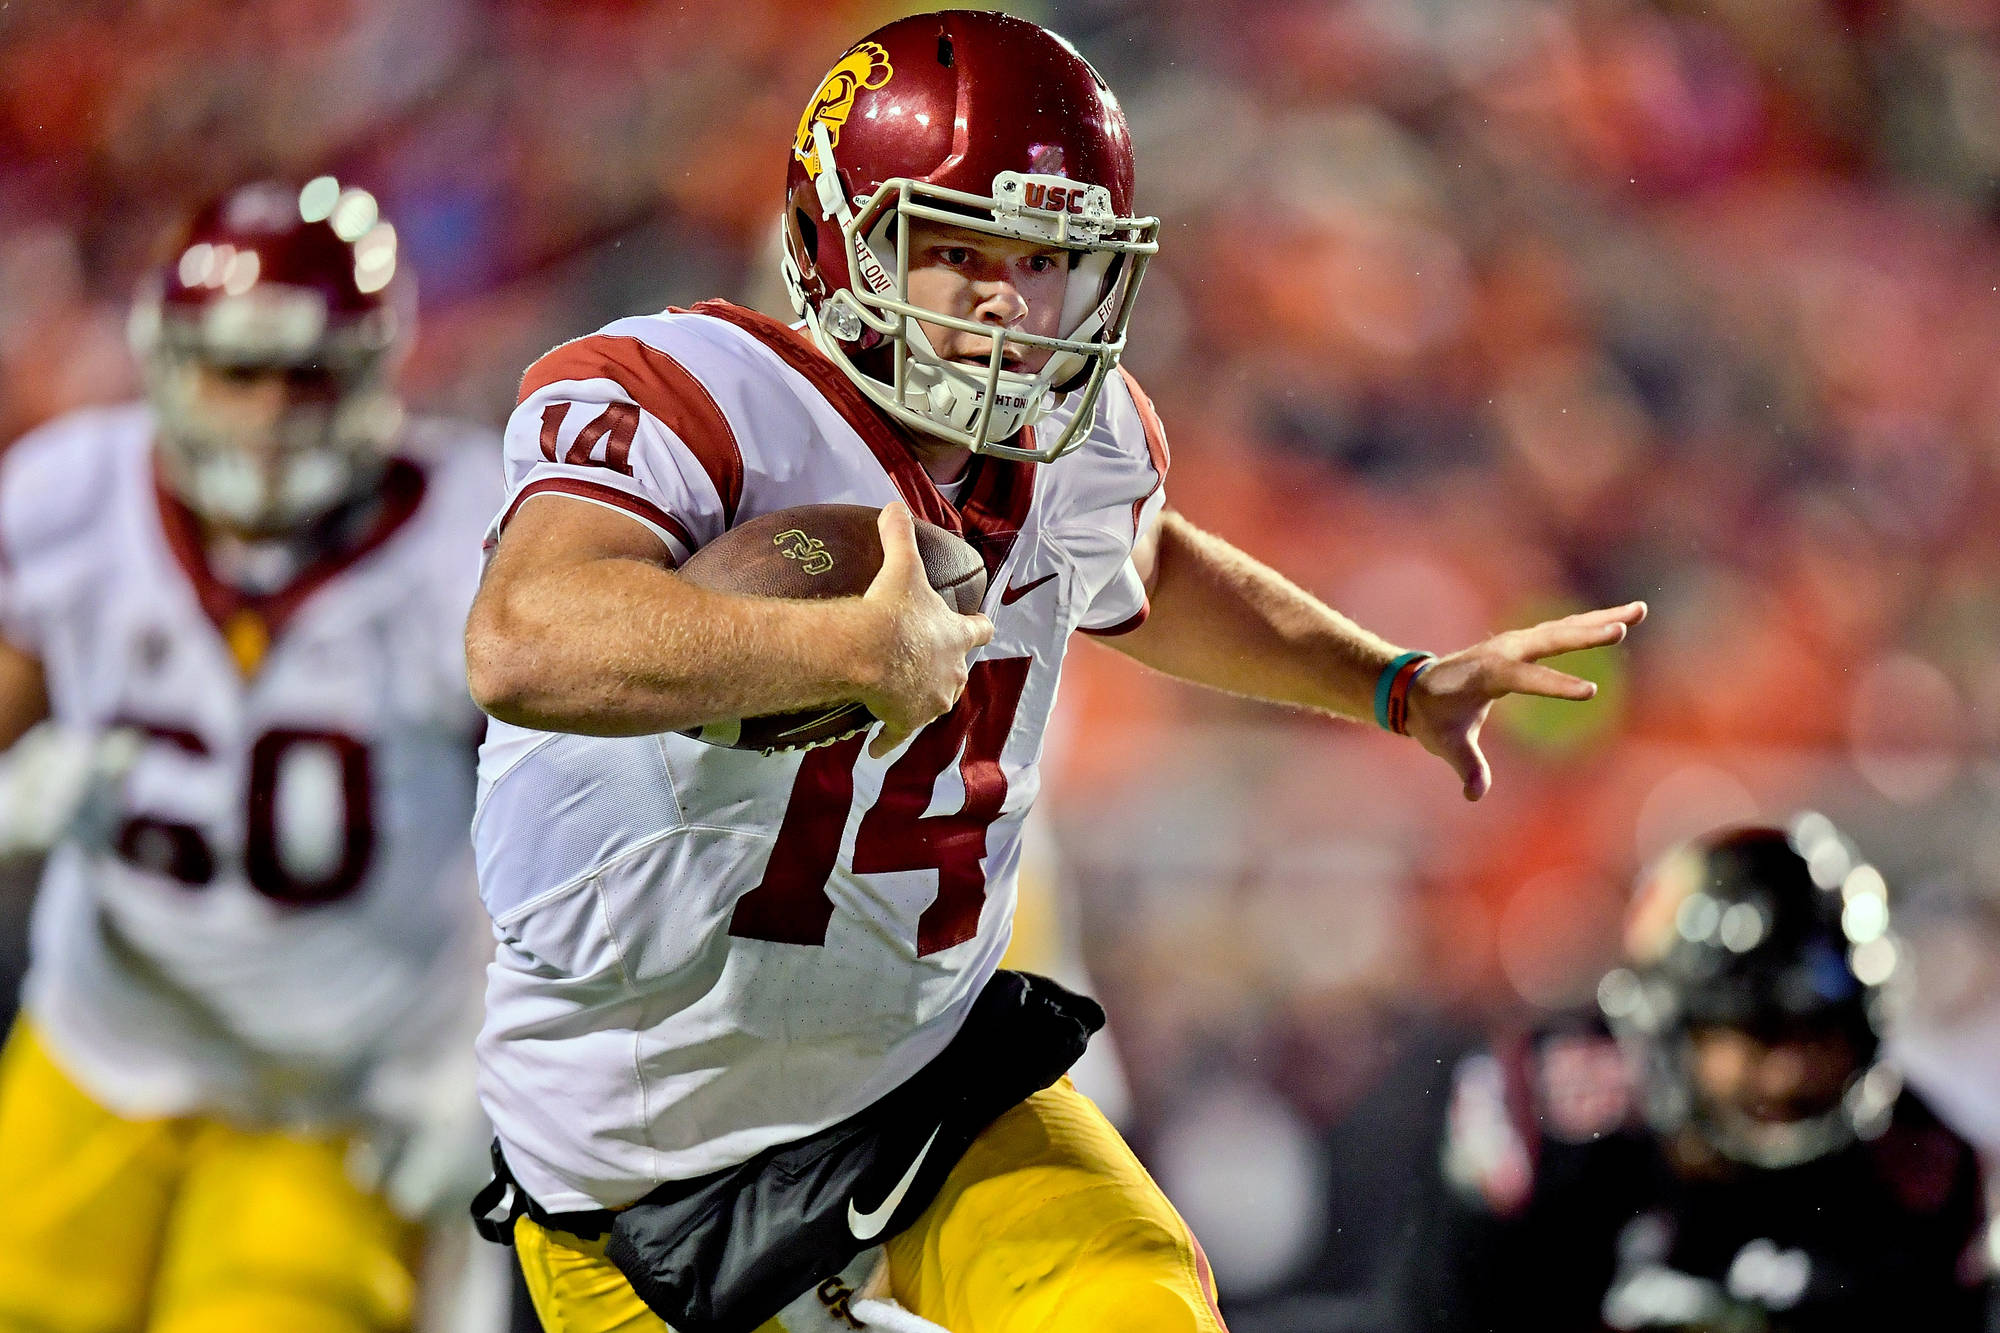 College Football: Why USC Can Still Win the Pac-12 South